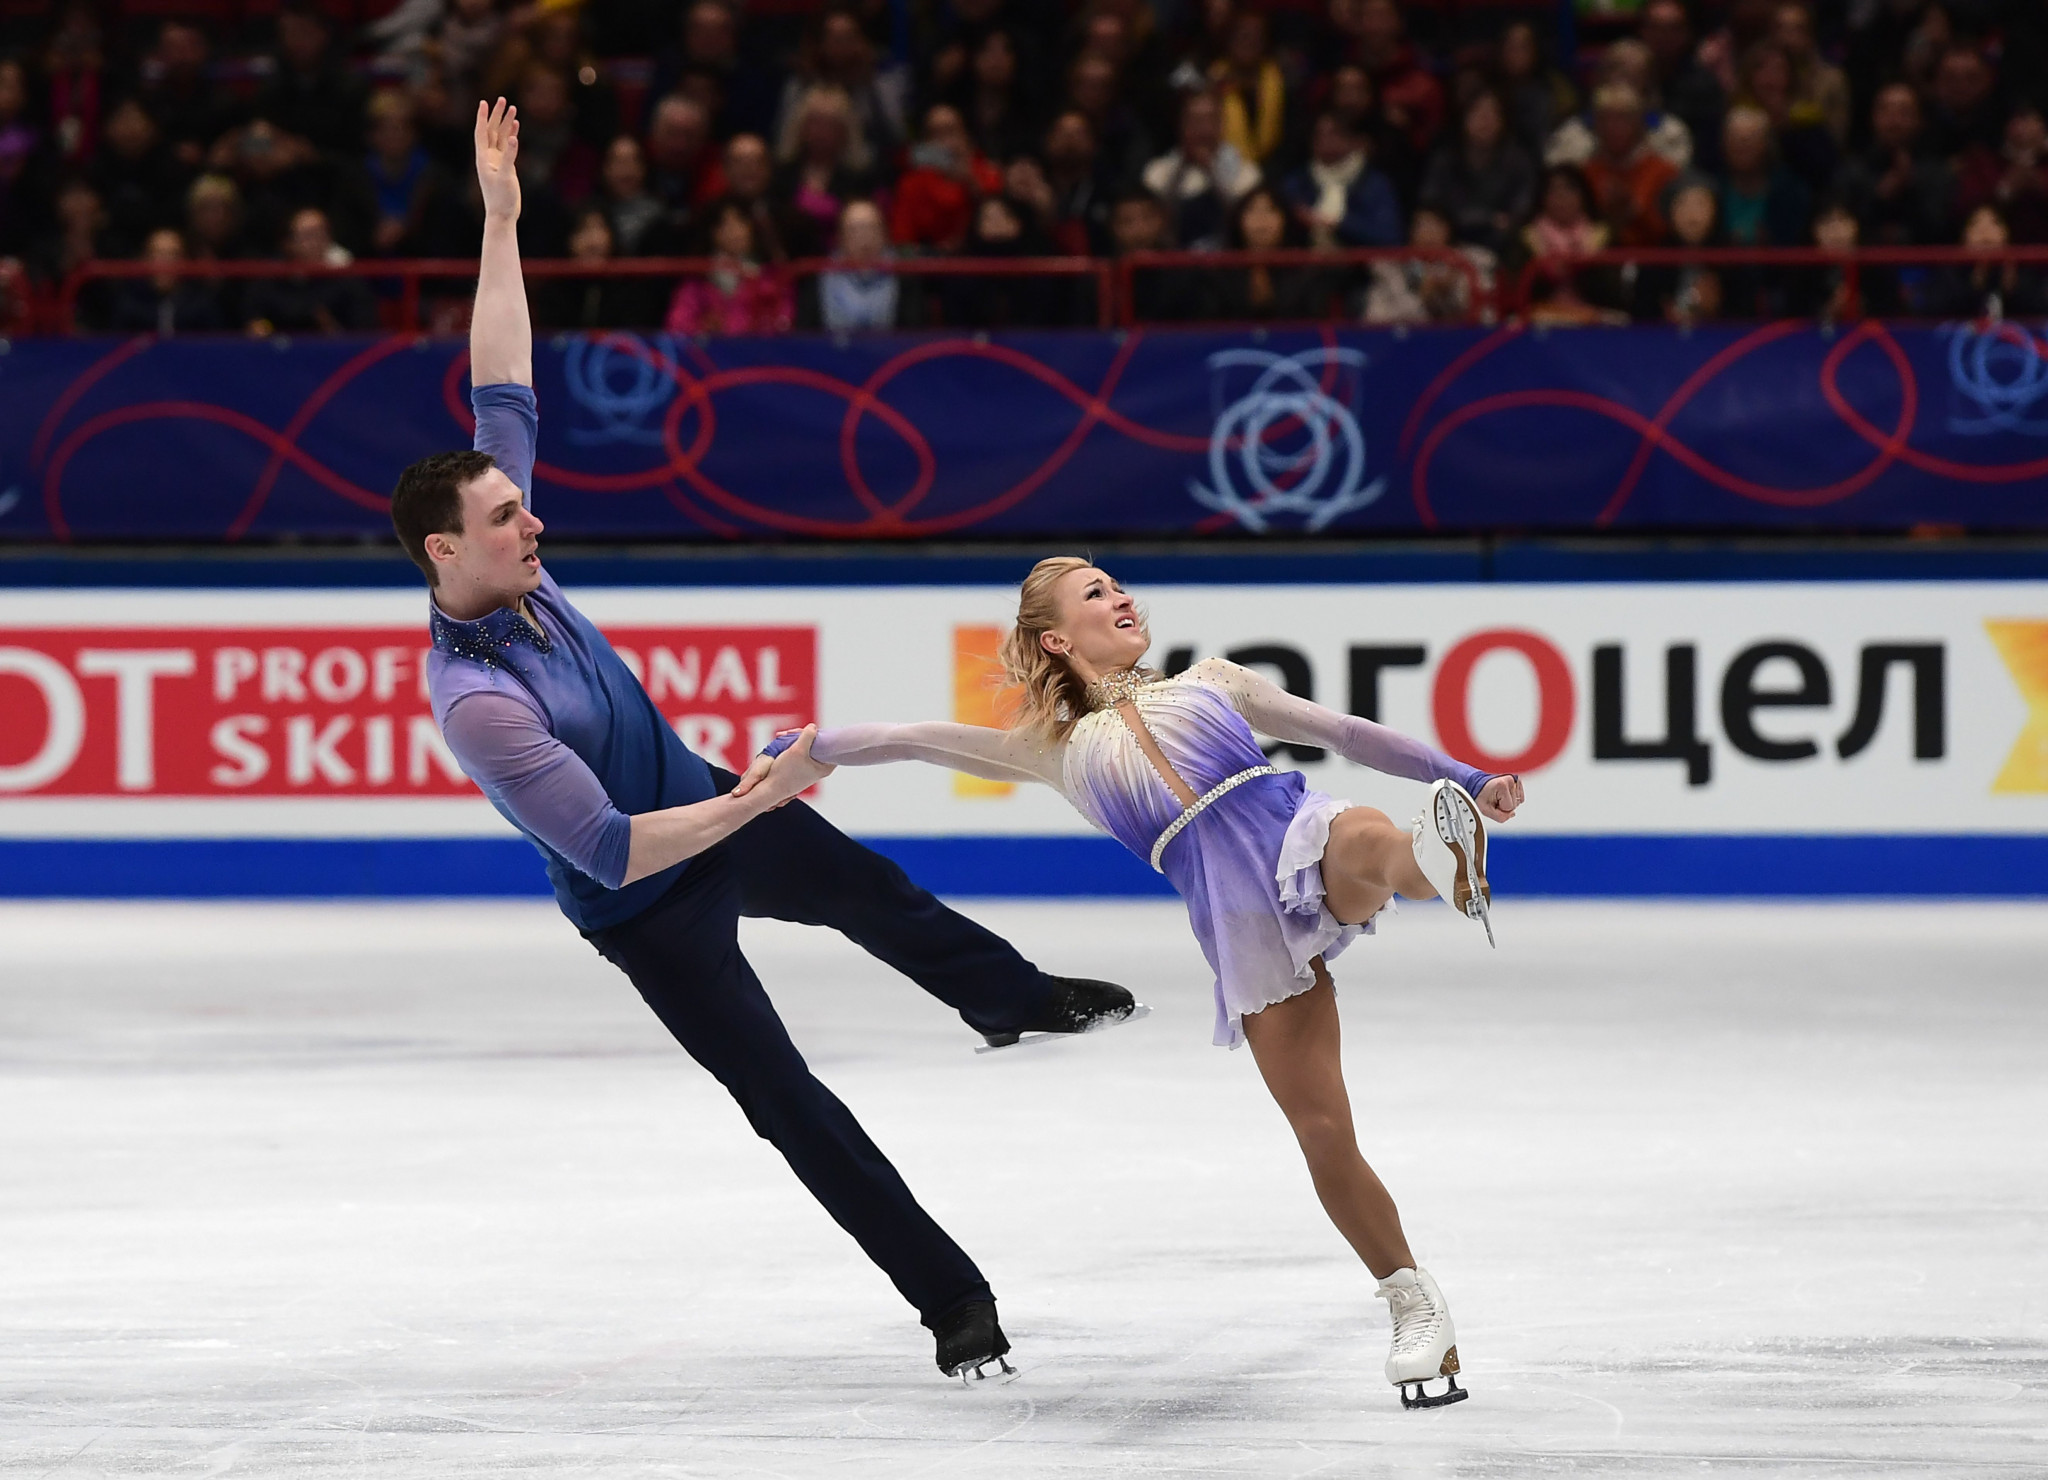 Germany's Aliona Savchenko and Bruno Massott won gold in the pairs event, despite Huang Feng